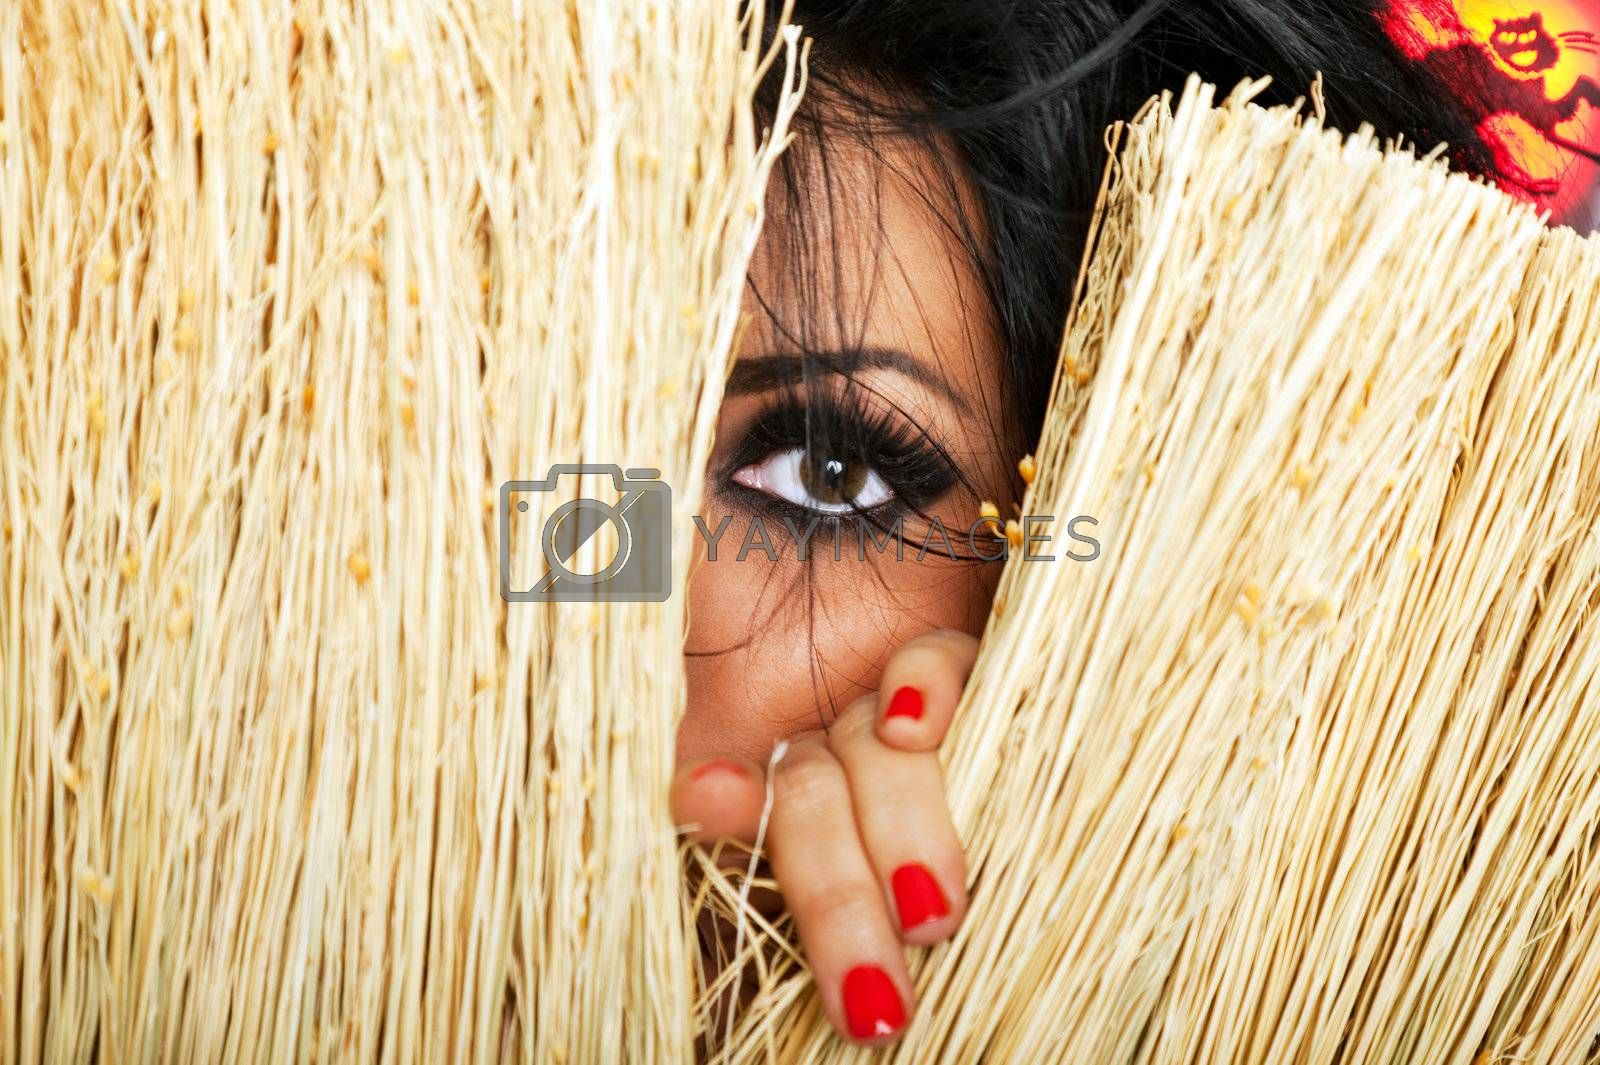 an eye of a witch hiding behind broom